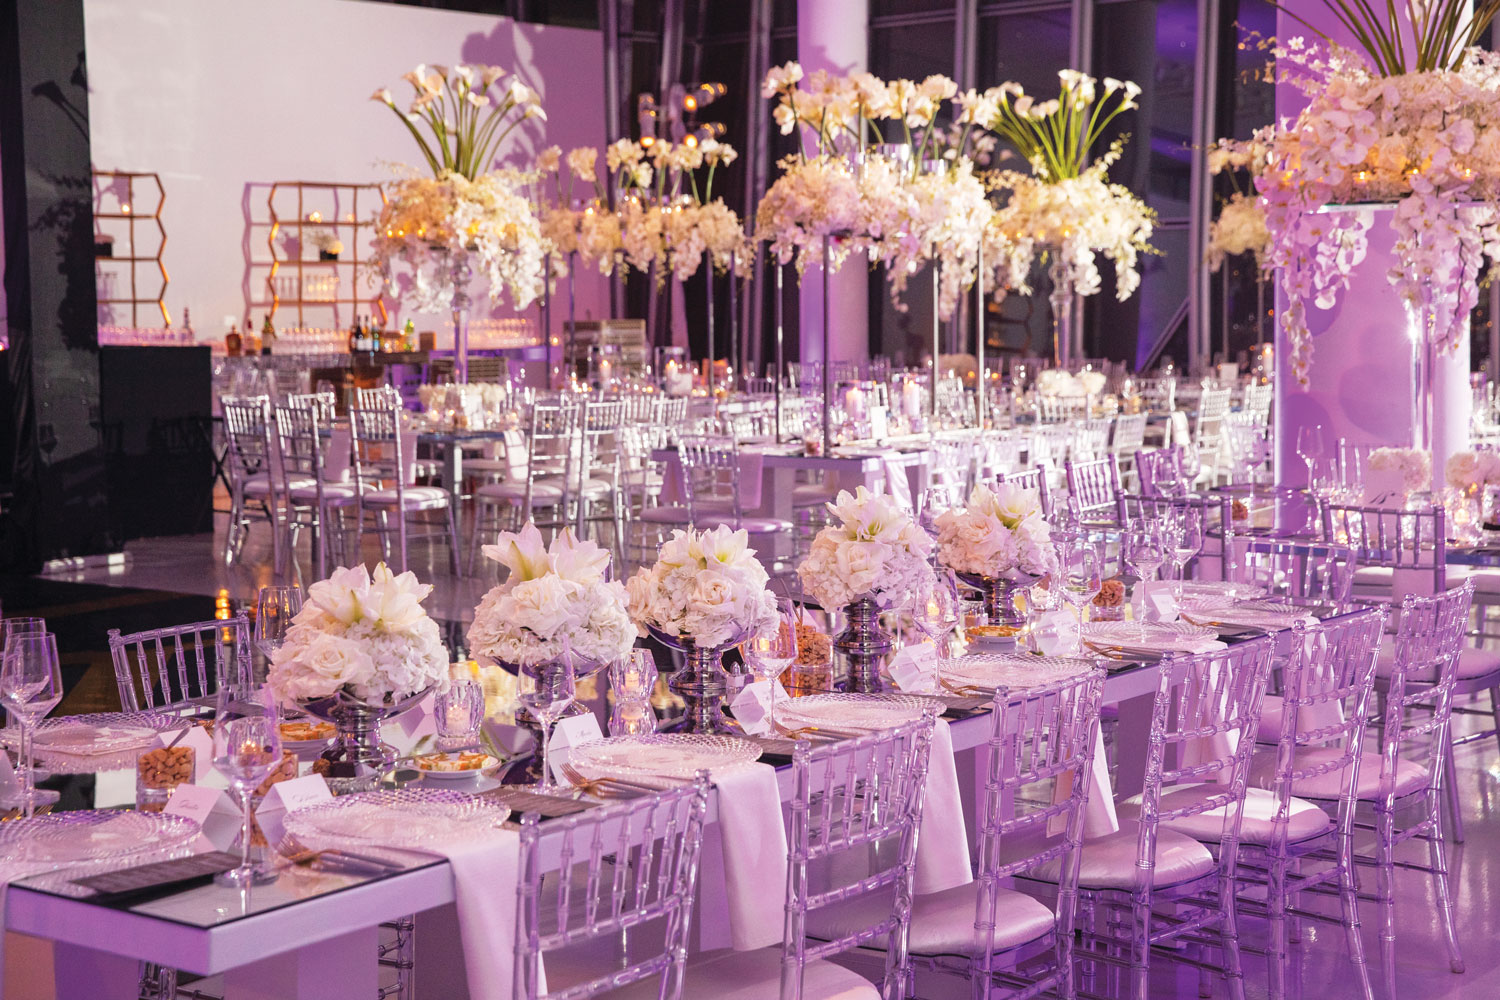 Inside Weddings magazine winter 2020 issue preview glam wedding reception purple pink lighting long table white flowers